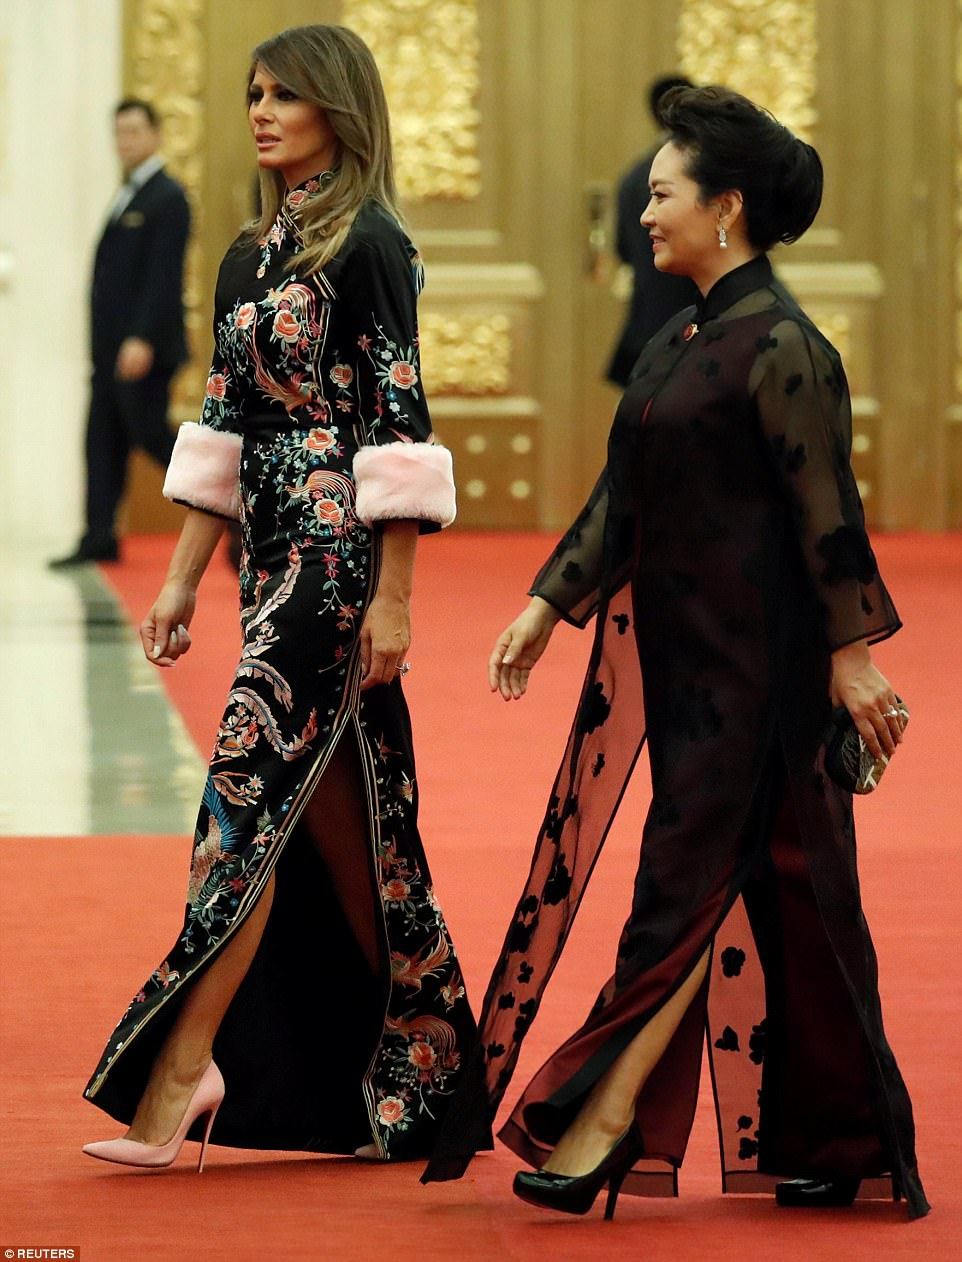 Wowing: Melania Trump once again stepped up her fashion game during a state dinner in Beijing on Thursday, donning an ornate Gucci fur trim dress with an ornate pattern inspired by traditional Chinese clothing